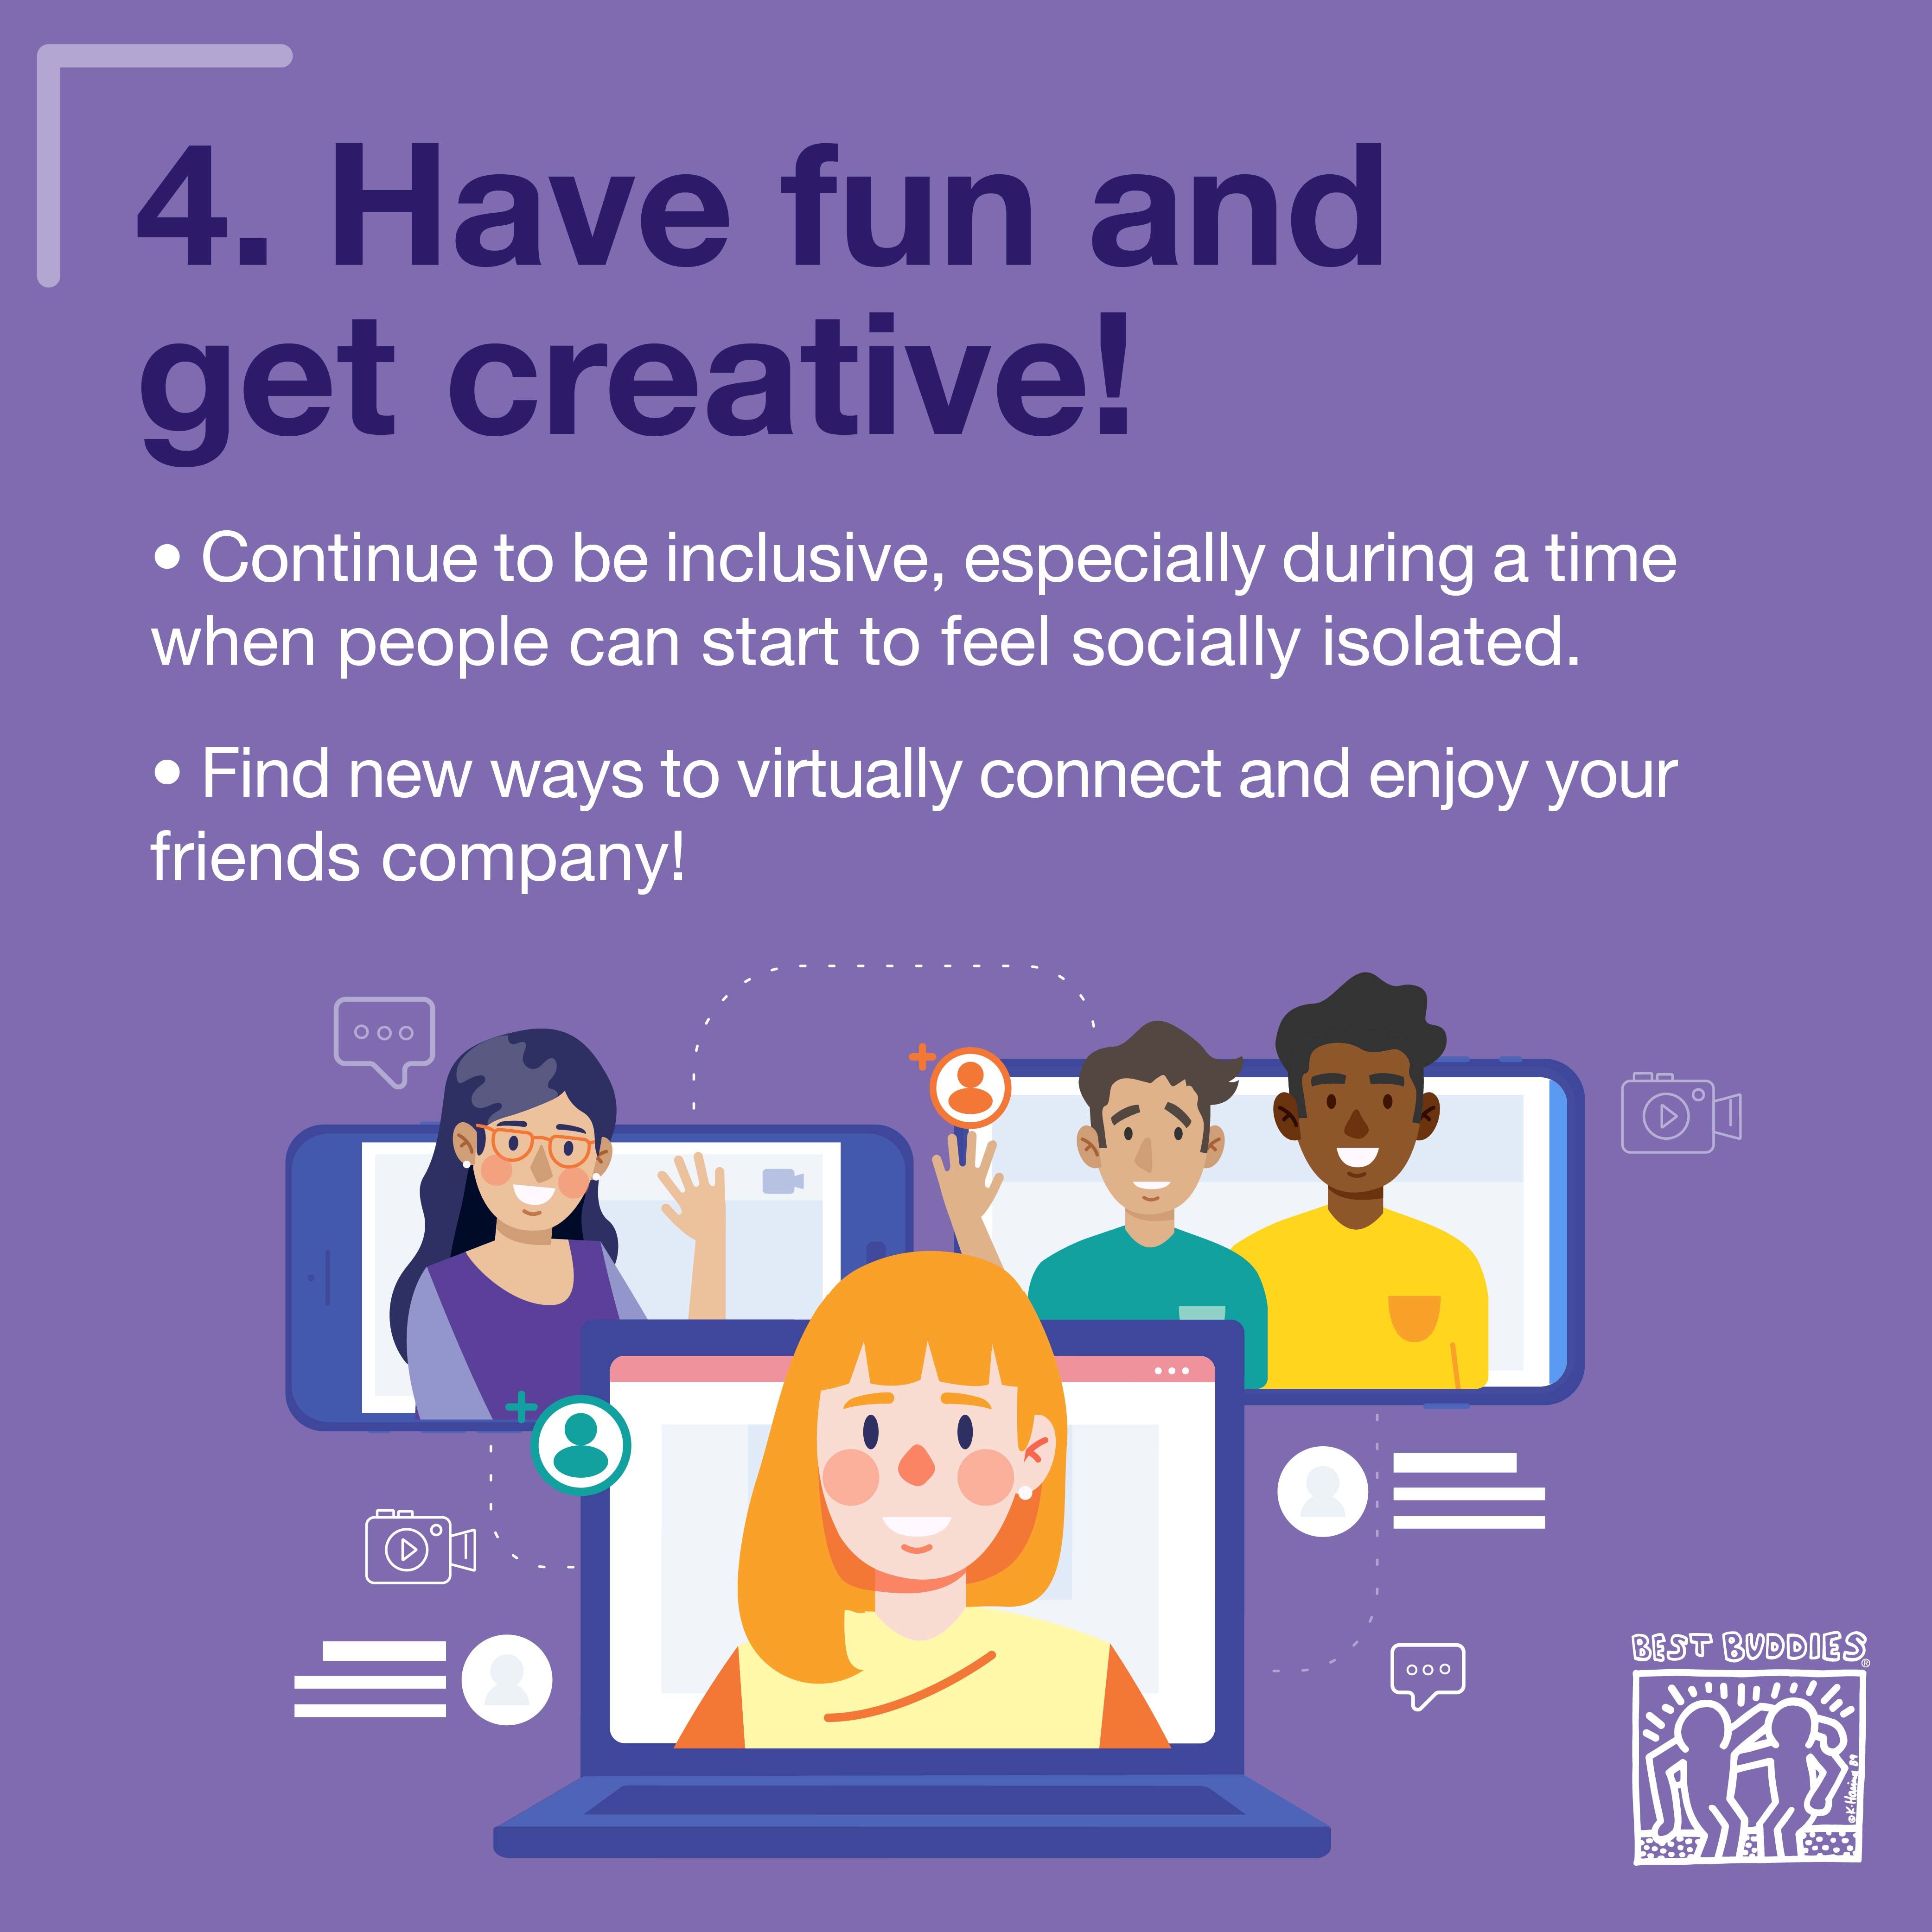 4. Have fun and get creative! Continue to be inclusive, especially during a time when people can start to feel socially isolated. Find new way to virtually connect and enjoy your friends' company!